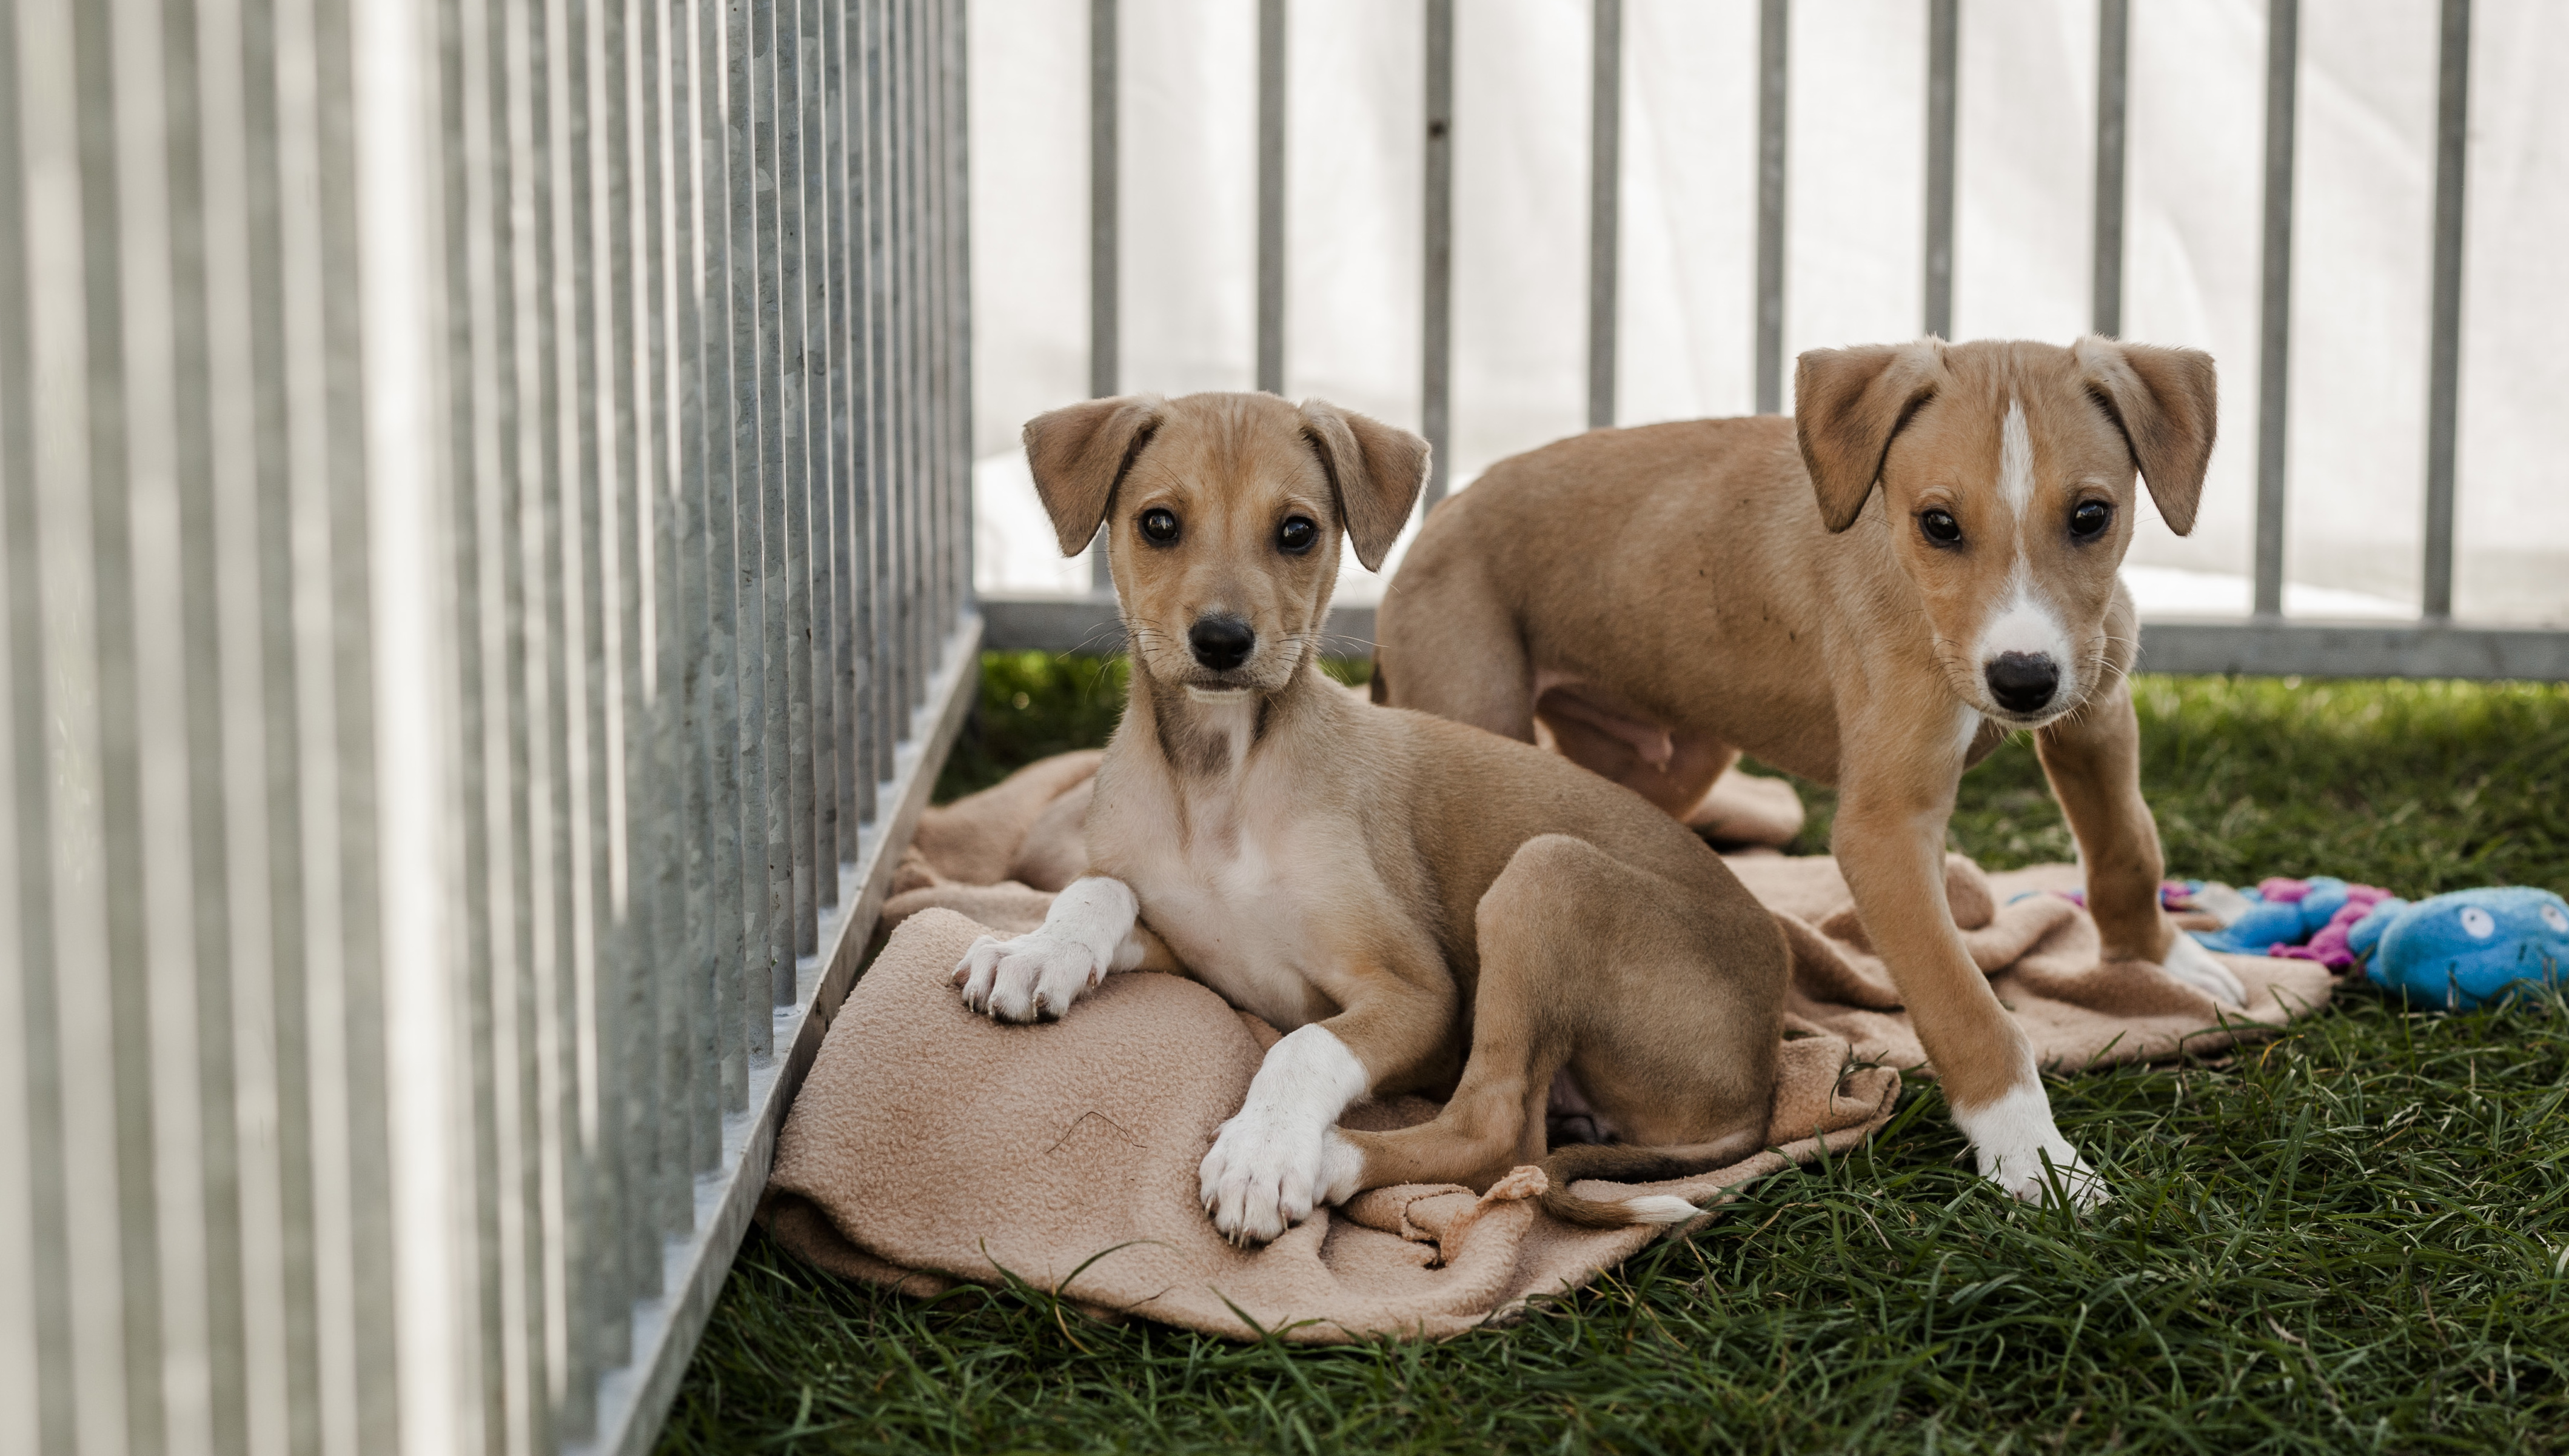 Buying a puppy | How to buy a puppy responsibly | Blue Cross